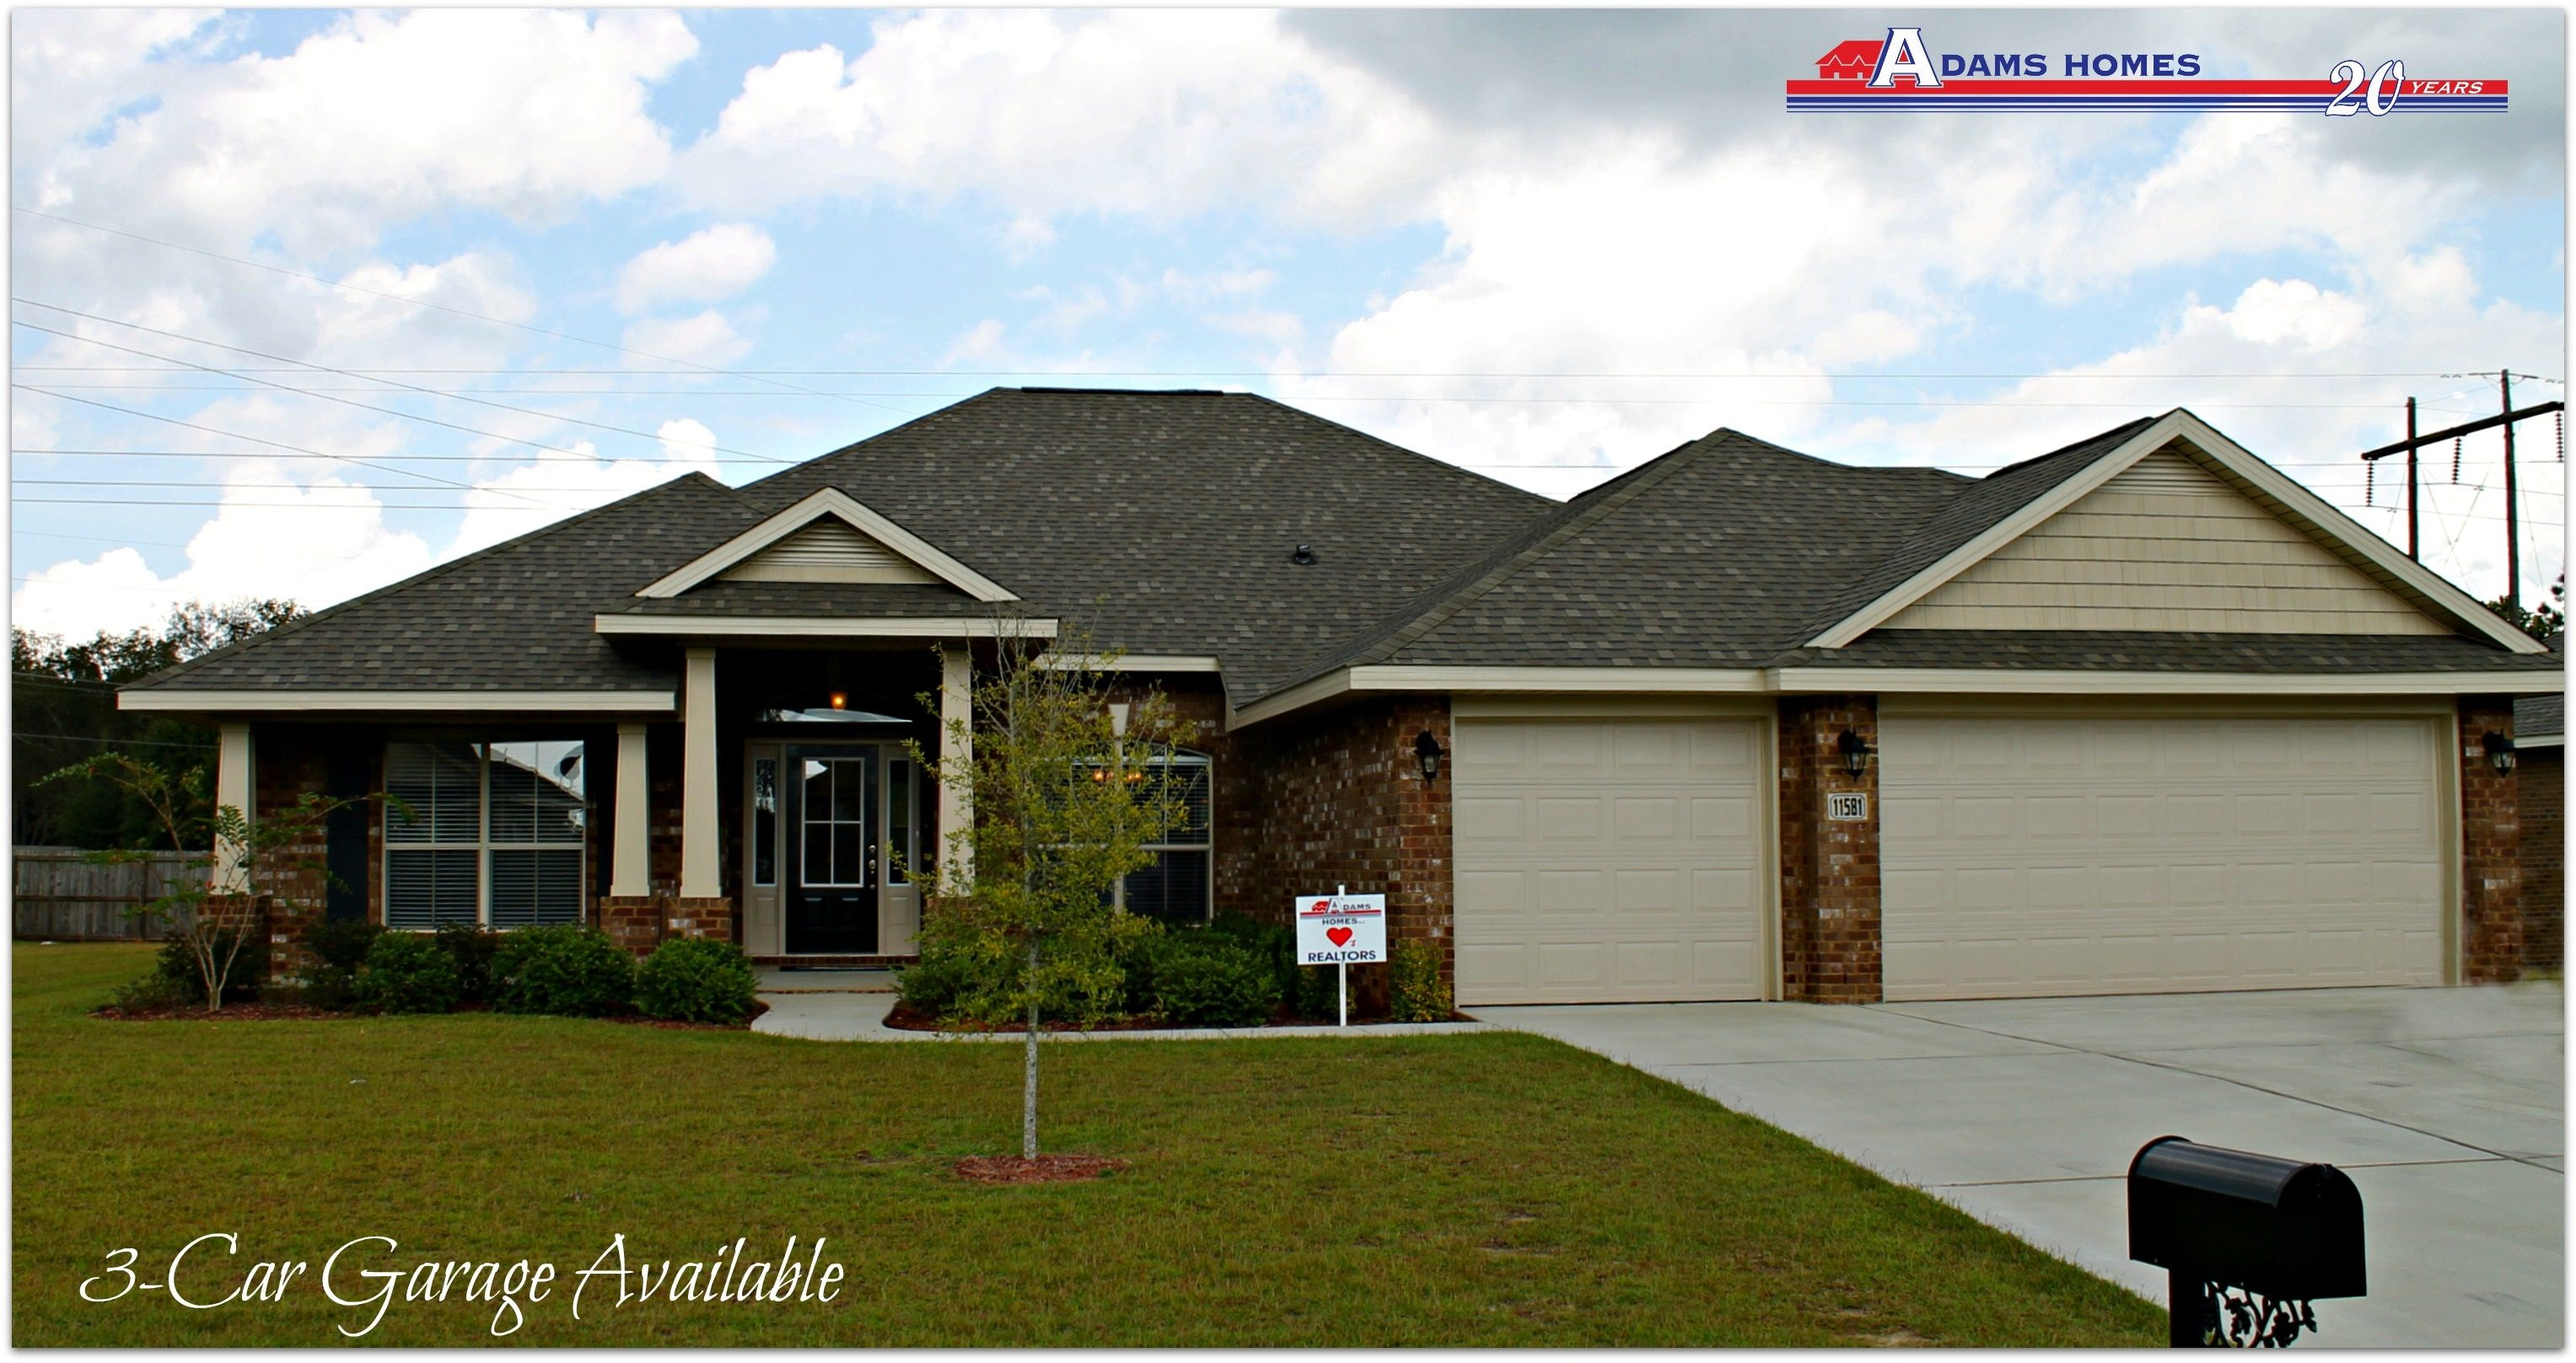 Featured home the adams homes 2 265 adamshomes for Adams homes plans